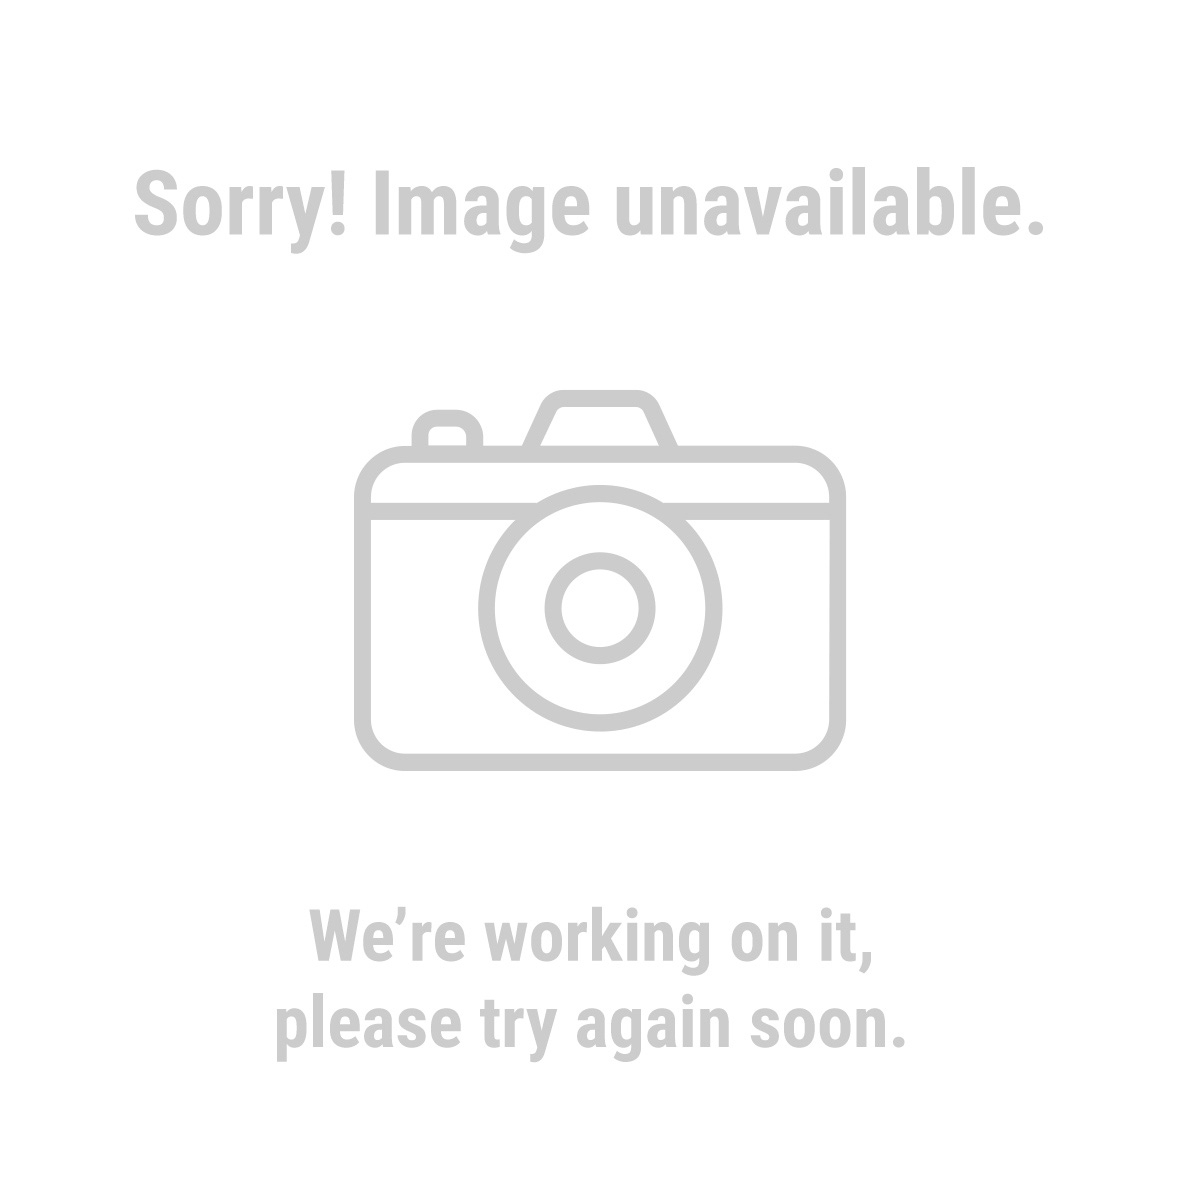 Pittsburgh® 69878 3/4 in. Jumbo Heavy Duty SAE Socket Set 20 Pc